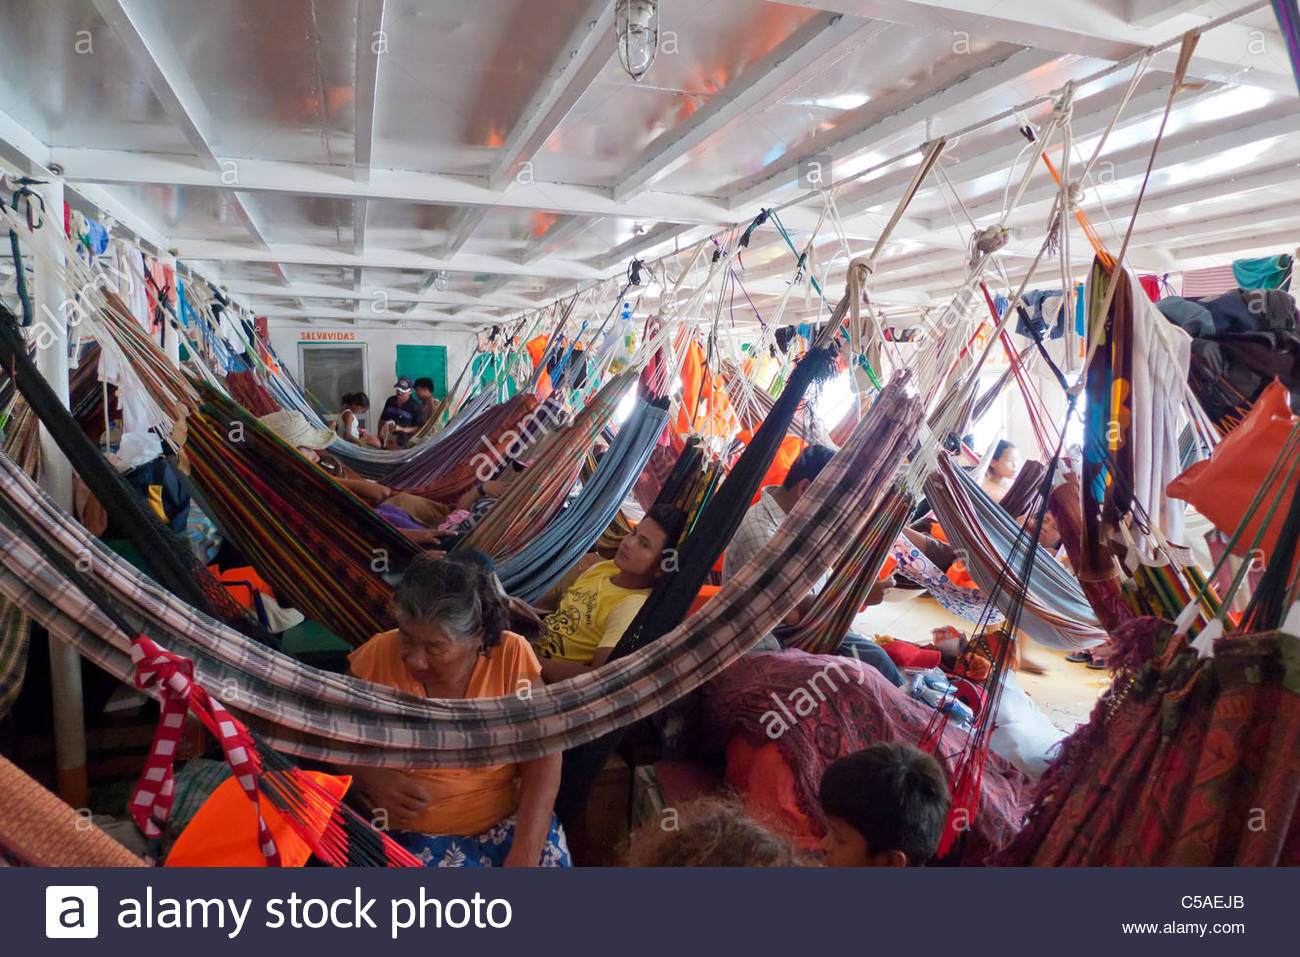 Crowded interior of a river boat on the Ucayali River, Loreto, Peru - Stock Image